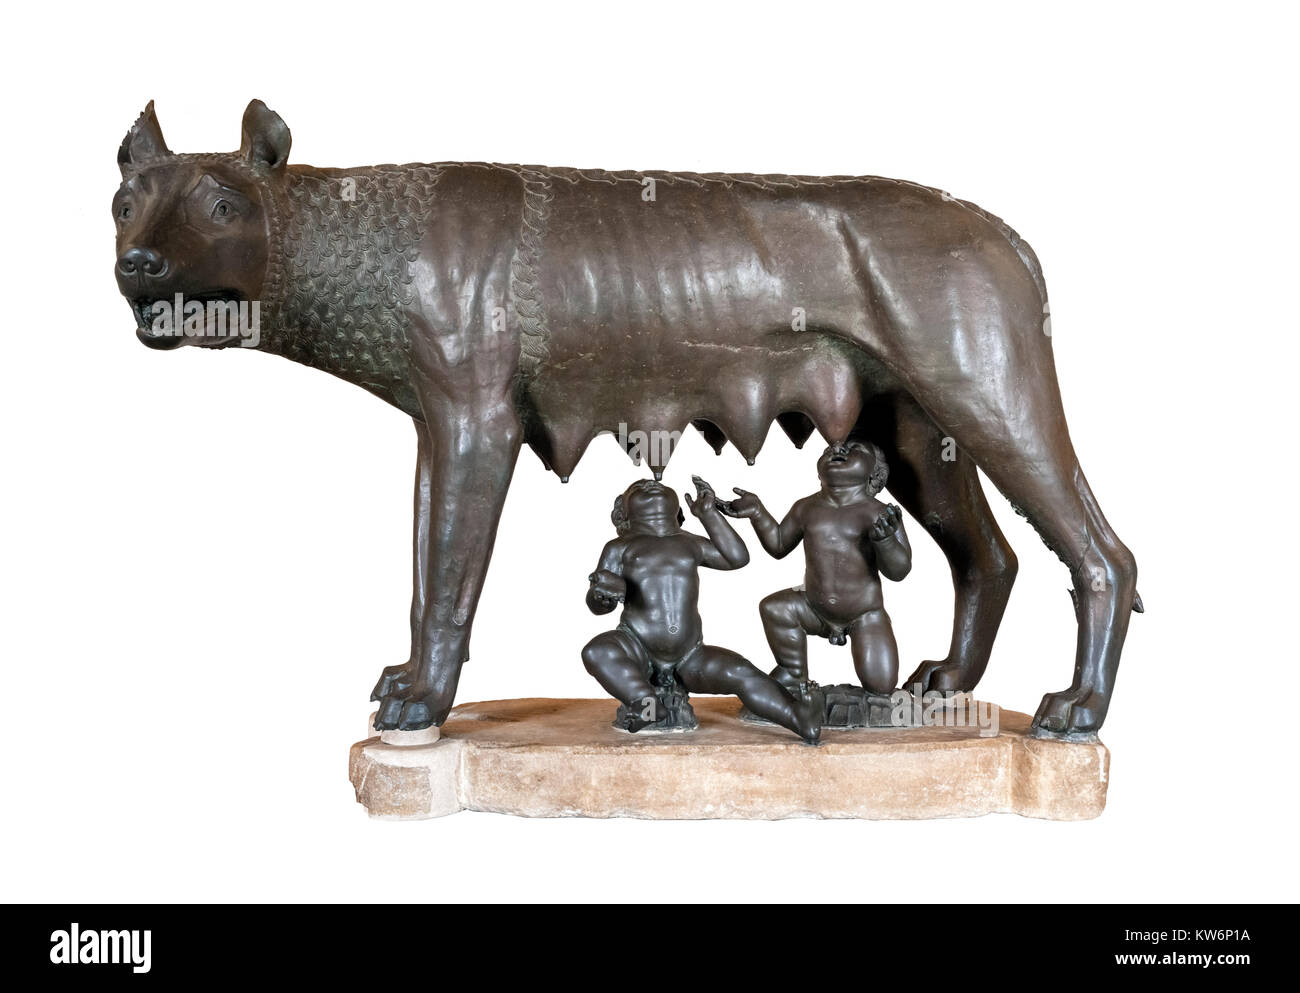 The Capitoline She-Wolf, a bronze statue depicting a wolf suckling Romulus and Remus, Capitoline Museums, Rome, - Stock Image